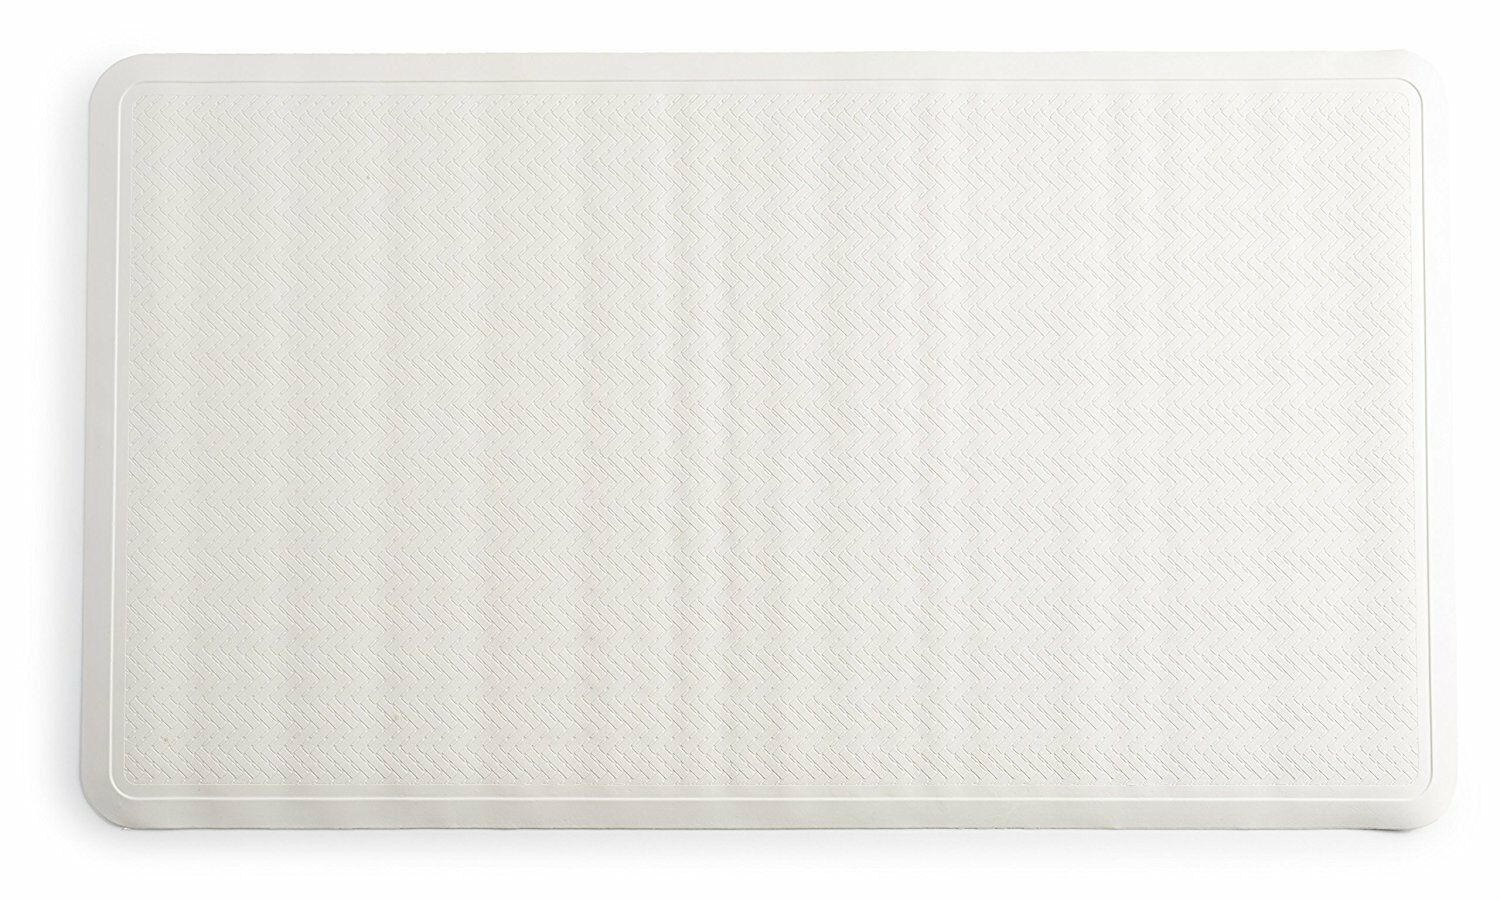 "Anti Slip Long Natural Rubber Bath Tub Mat Anti Bacterial 16"" X 28"" - White"